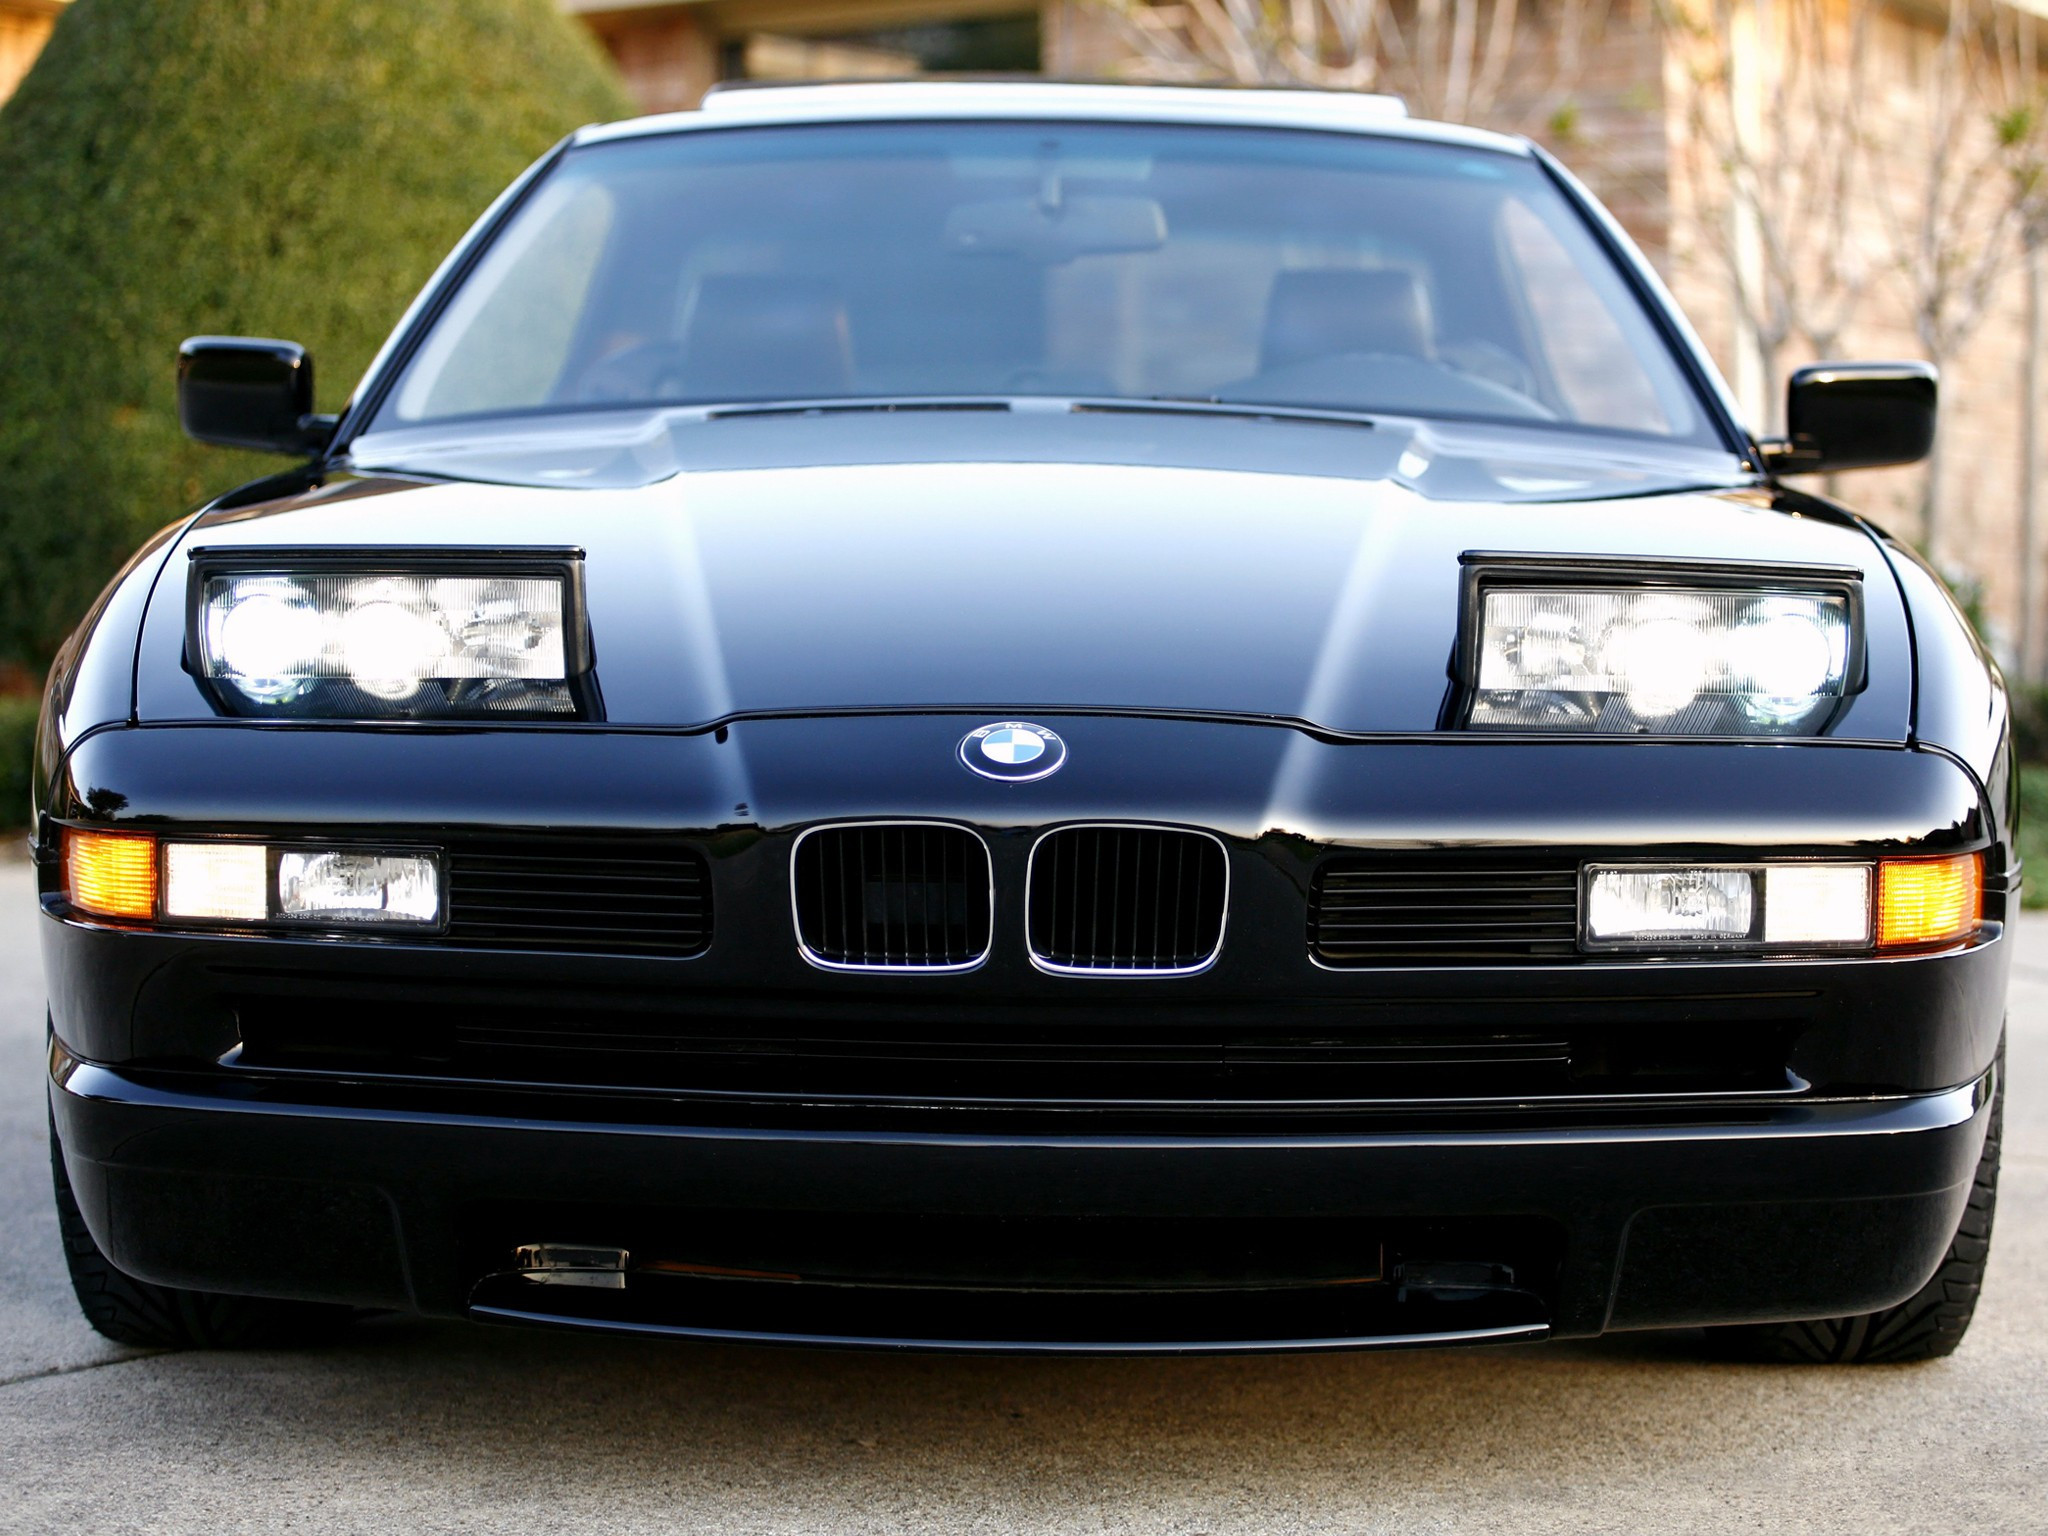 BMW 8 series E31 (1990 - 1999) gallery and specs   Bimmerin